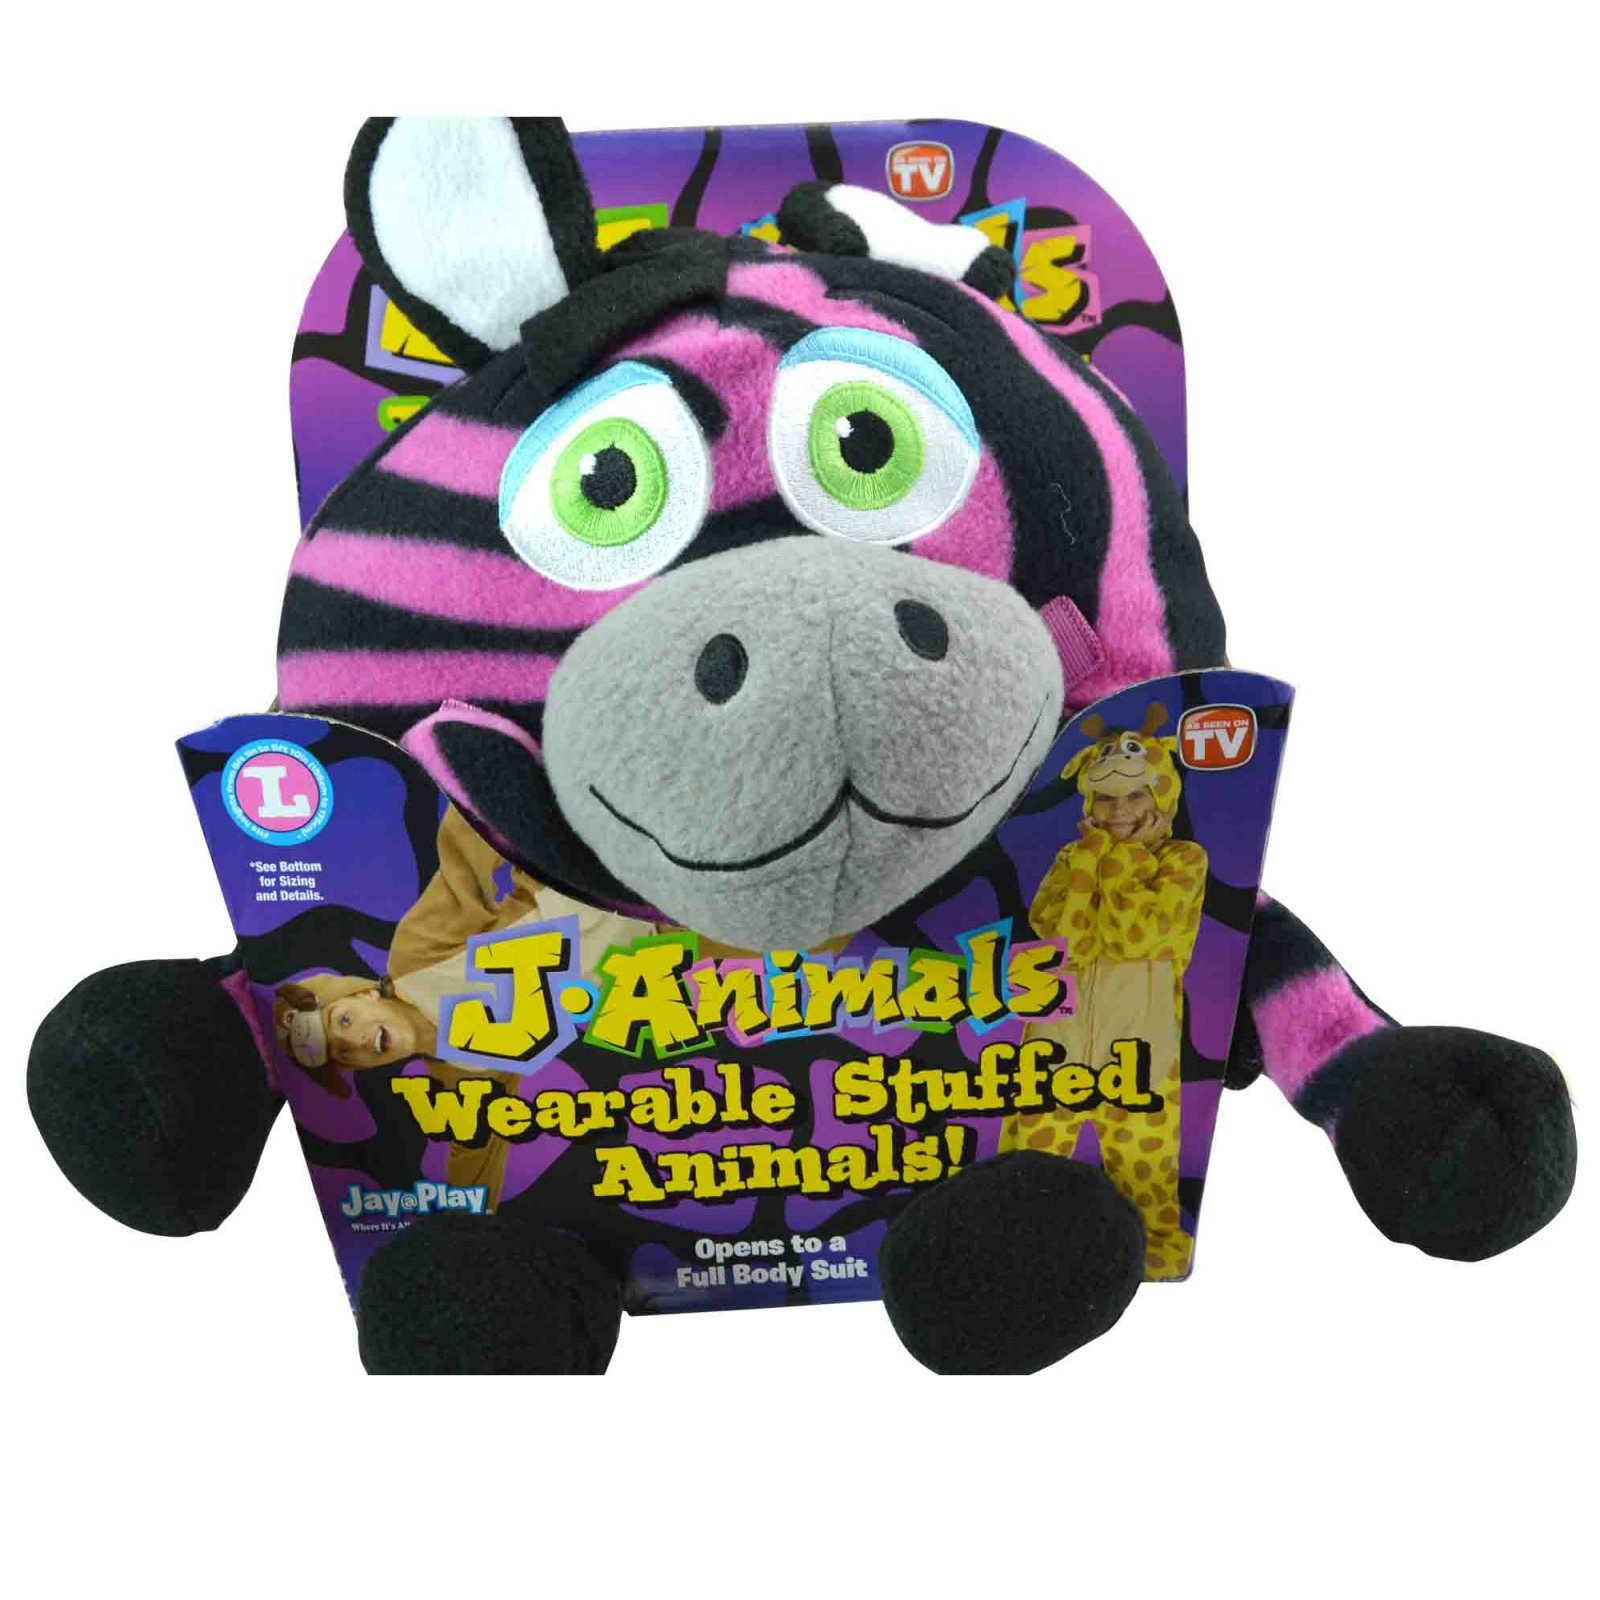 Snuggle time with Wearable Stuffed Animal Onesie Assorted Charaters